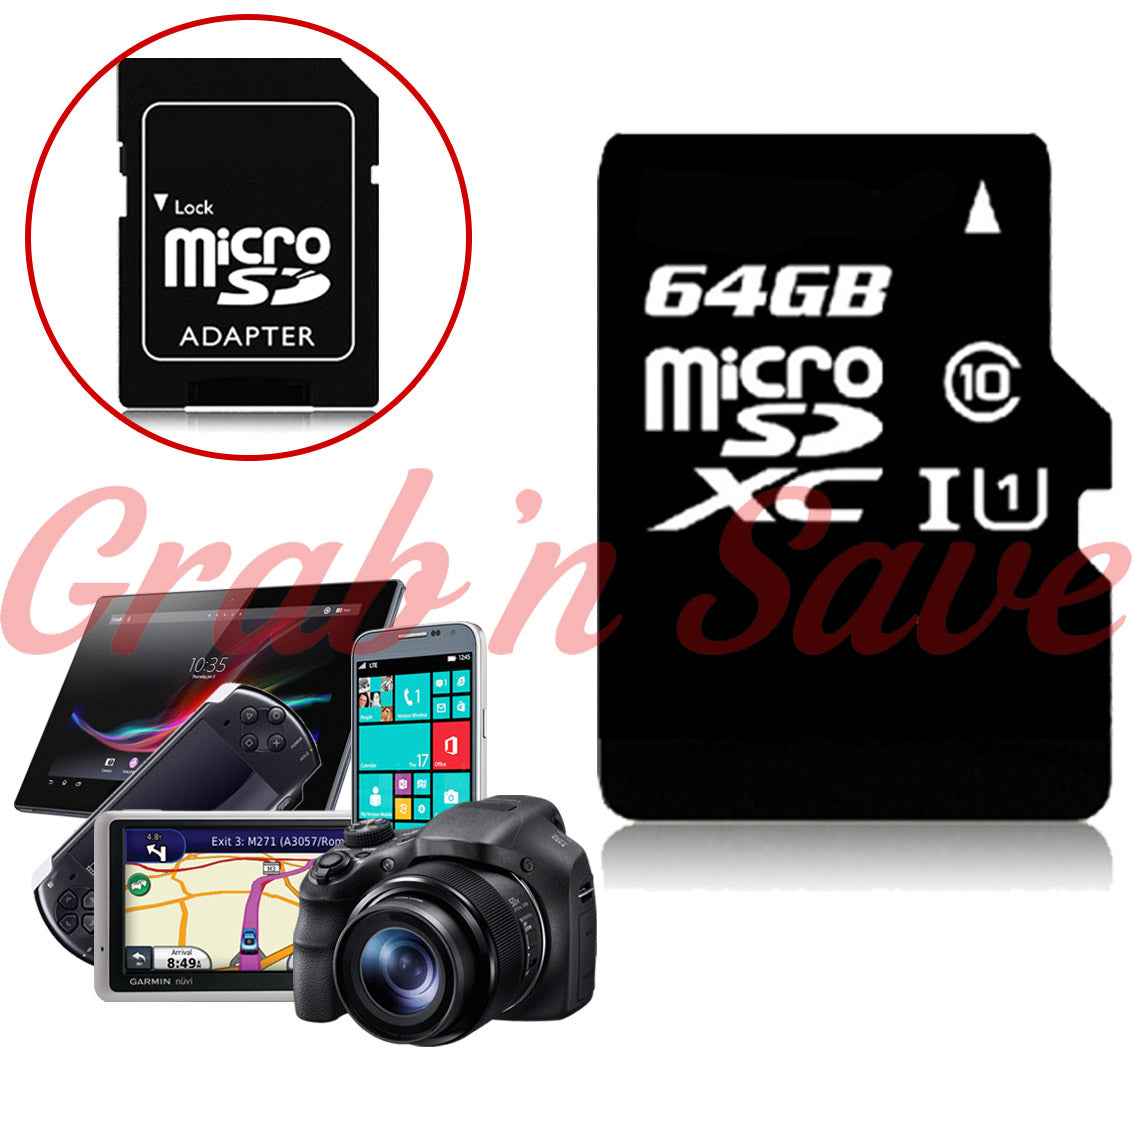 64GB Micro SD Card, Micro SD Card, Class 10 Micro SD Card